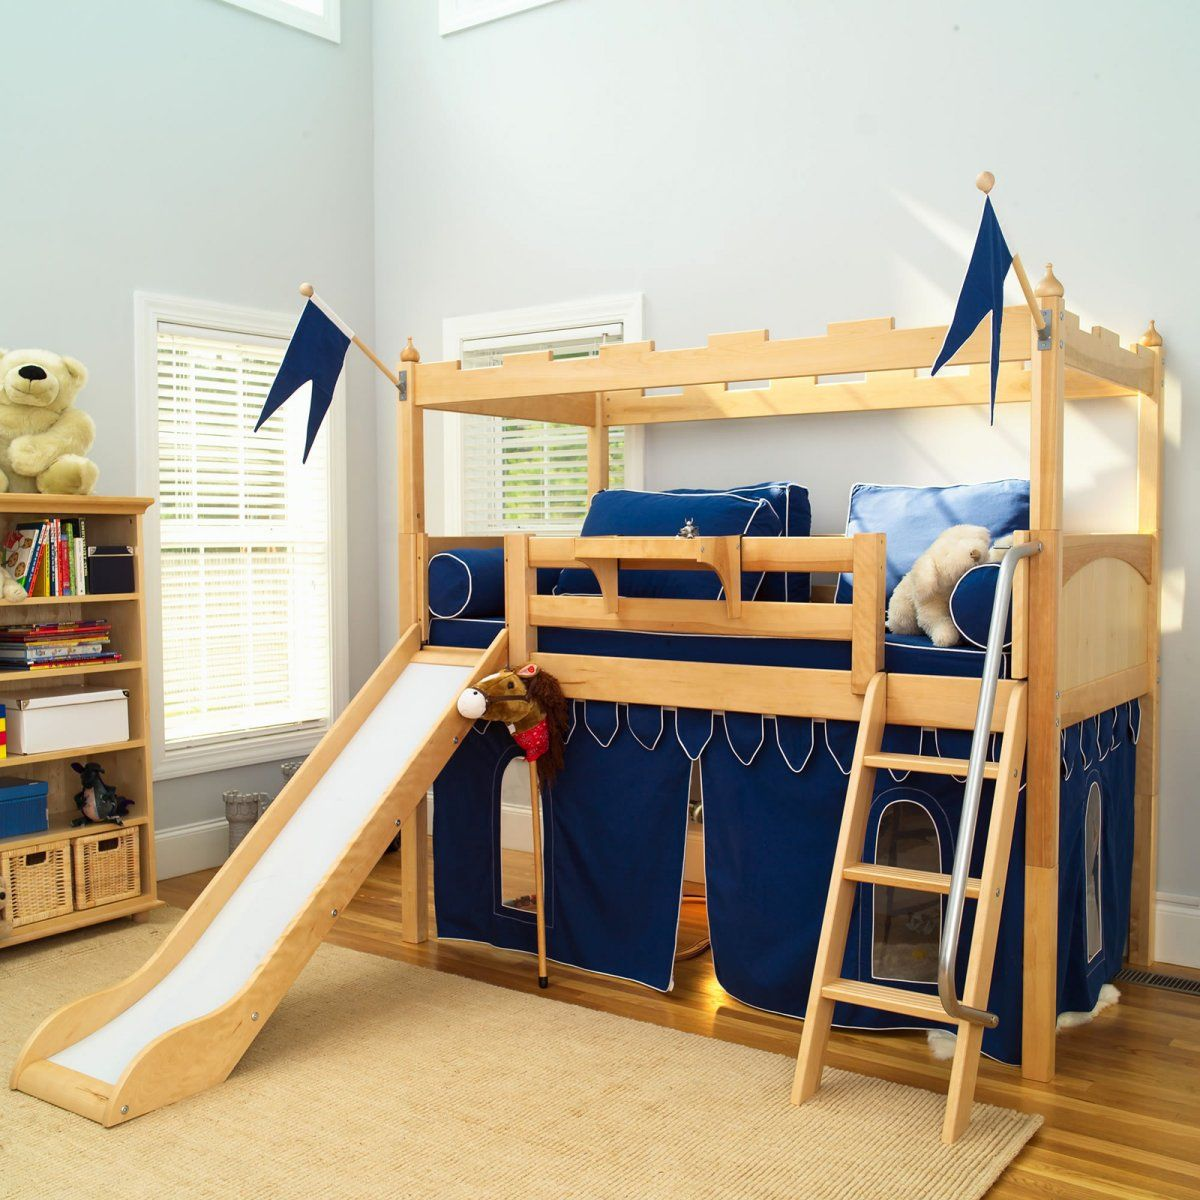 Girls loft bed with slide  Adorable Low Kids Bunk Bed Idea for Toddler with Wood Frame and